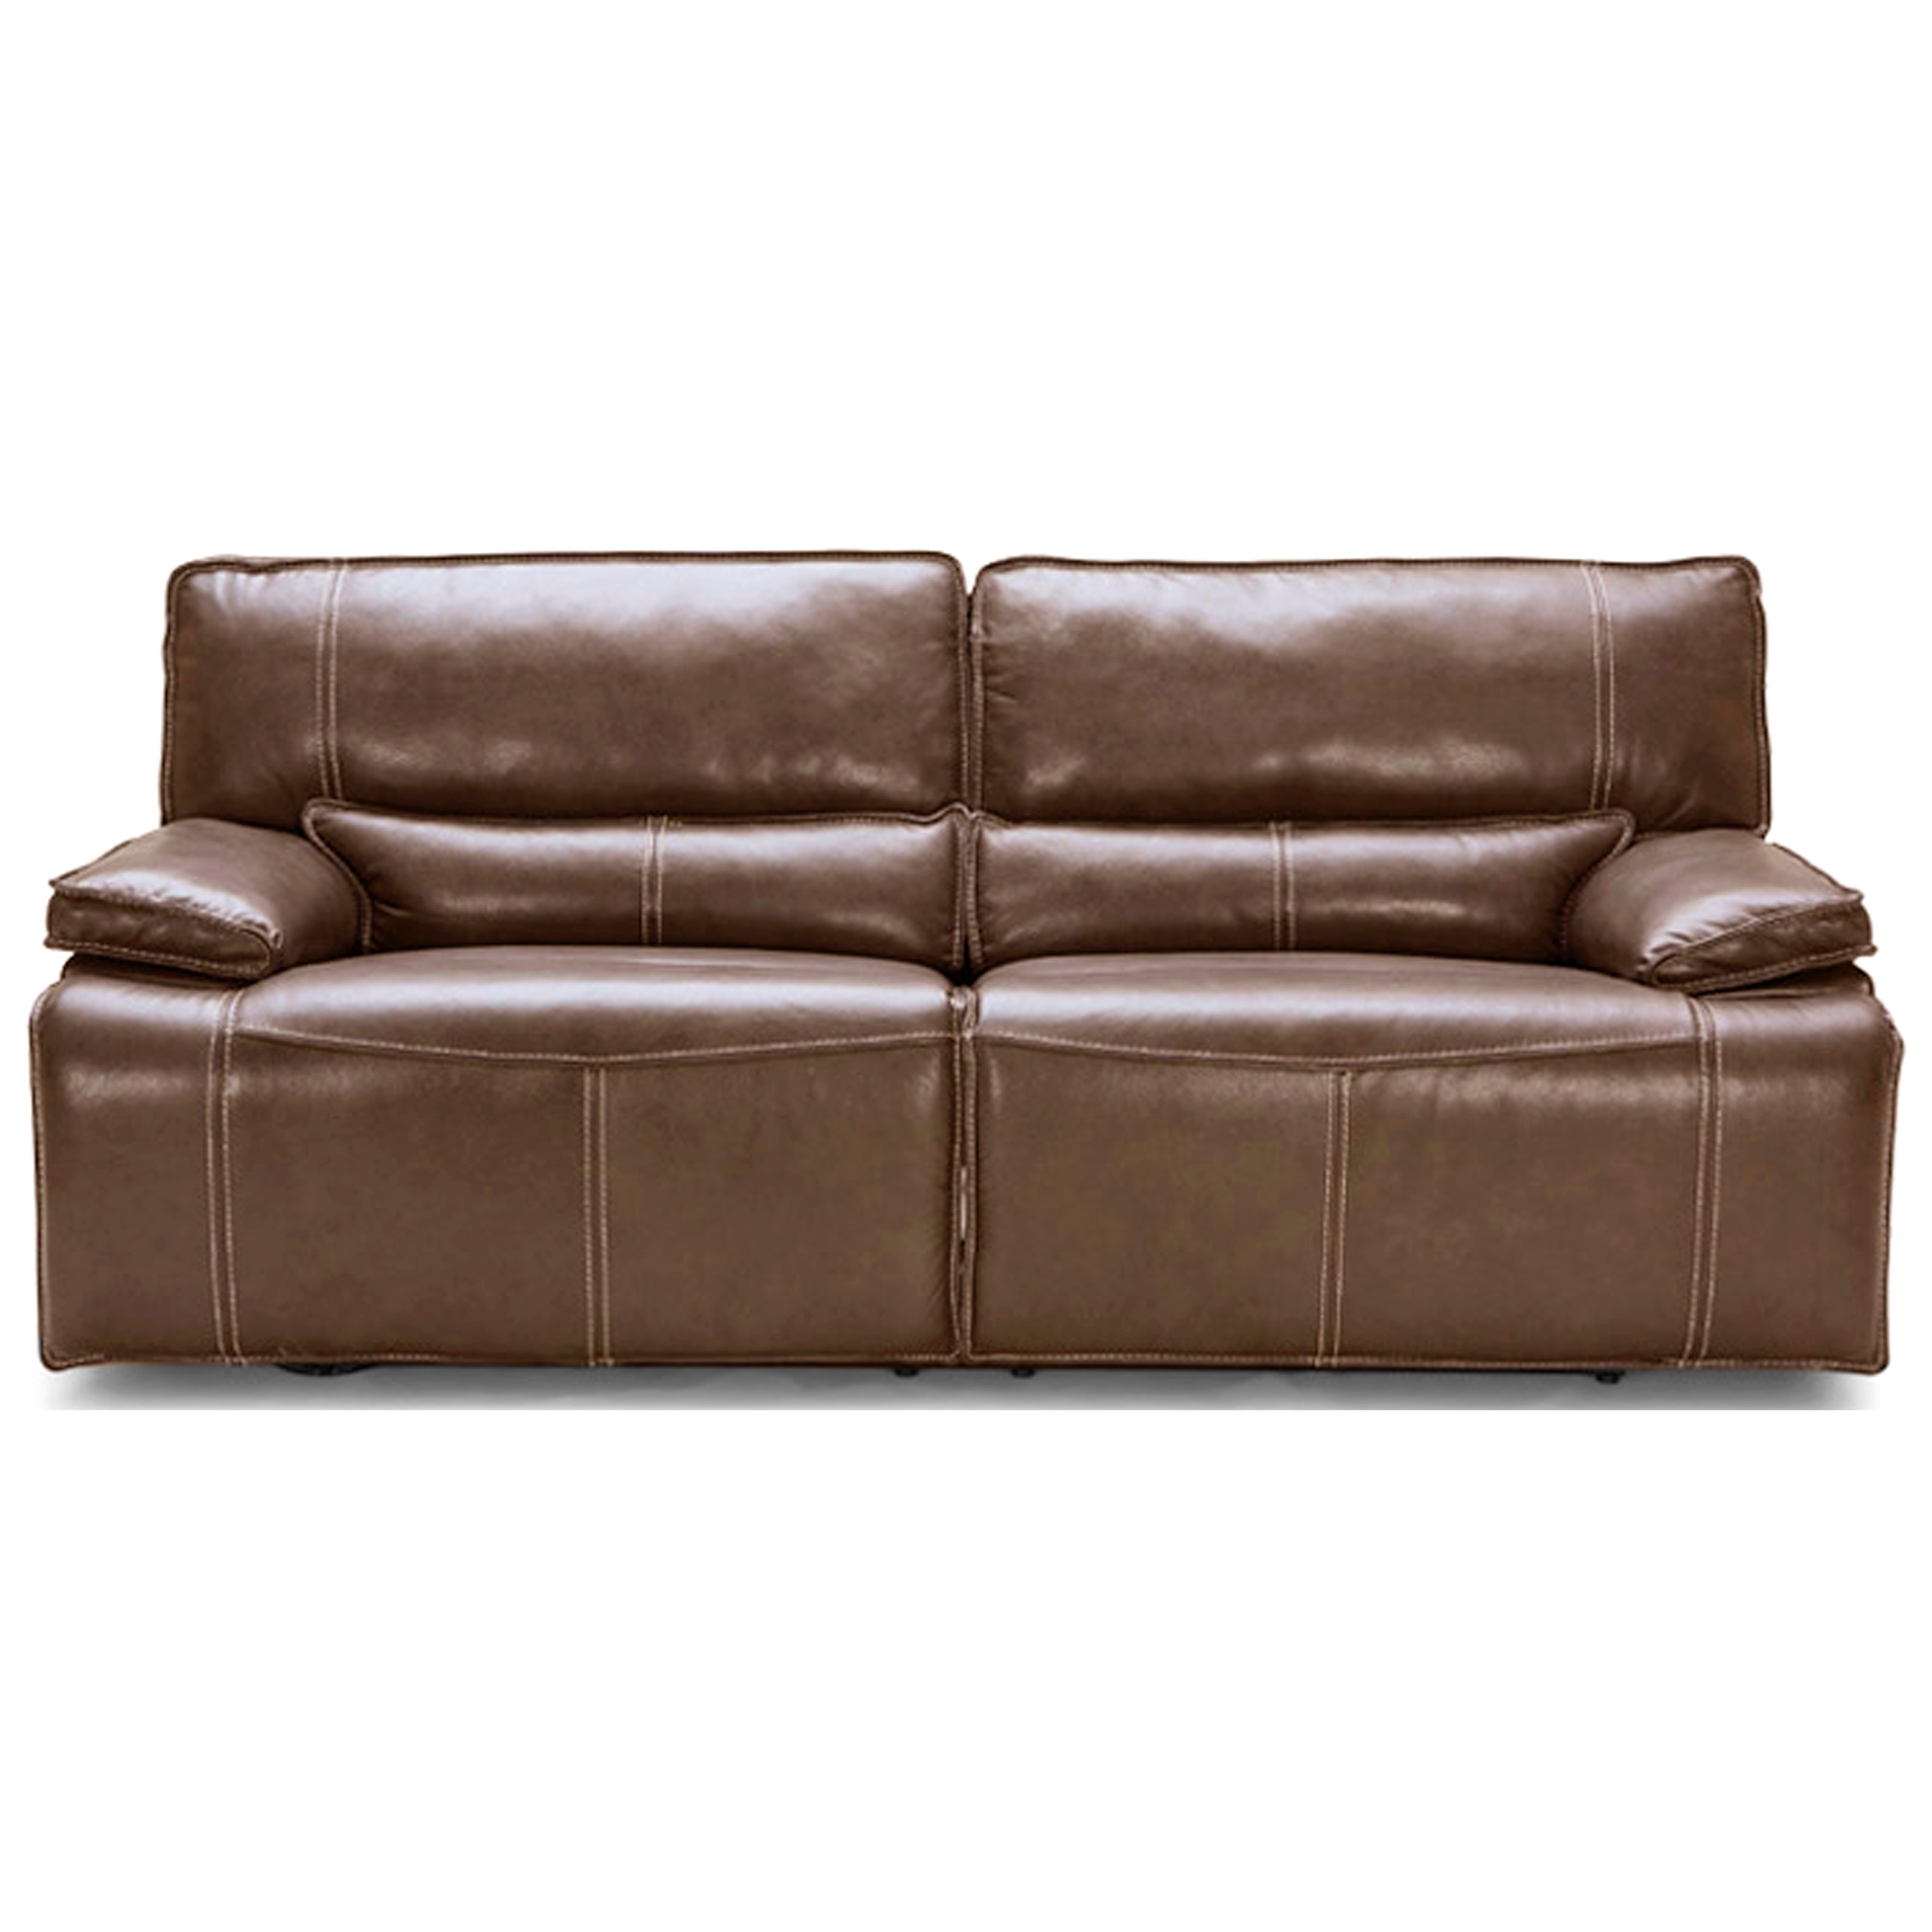 Km 080 Two Seat Reclining Sofa